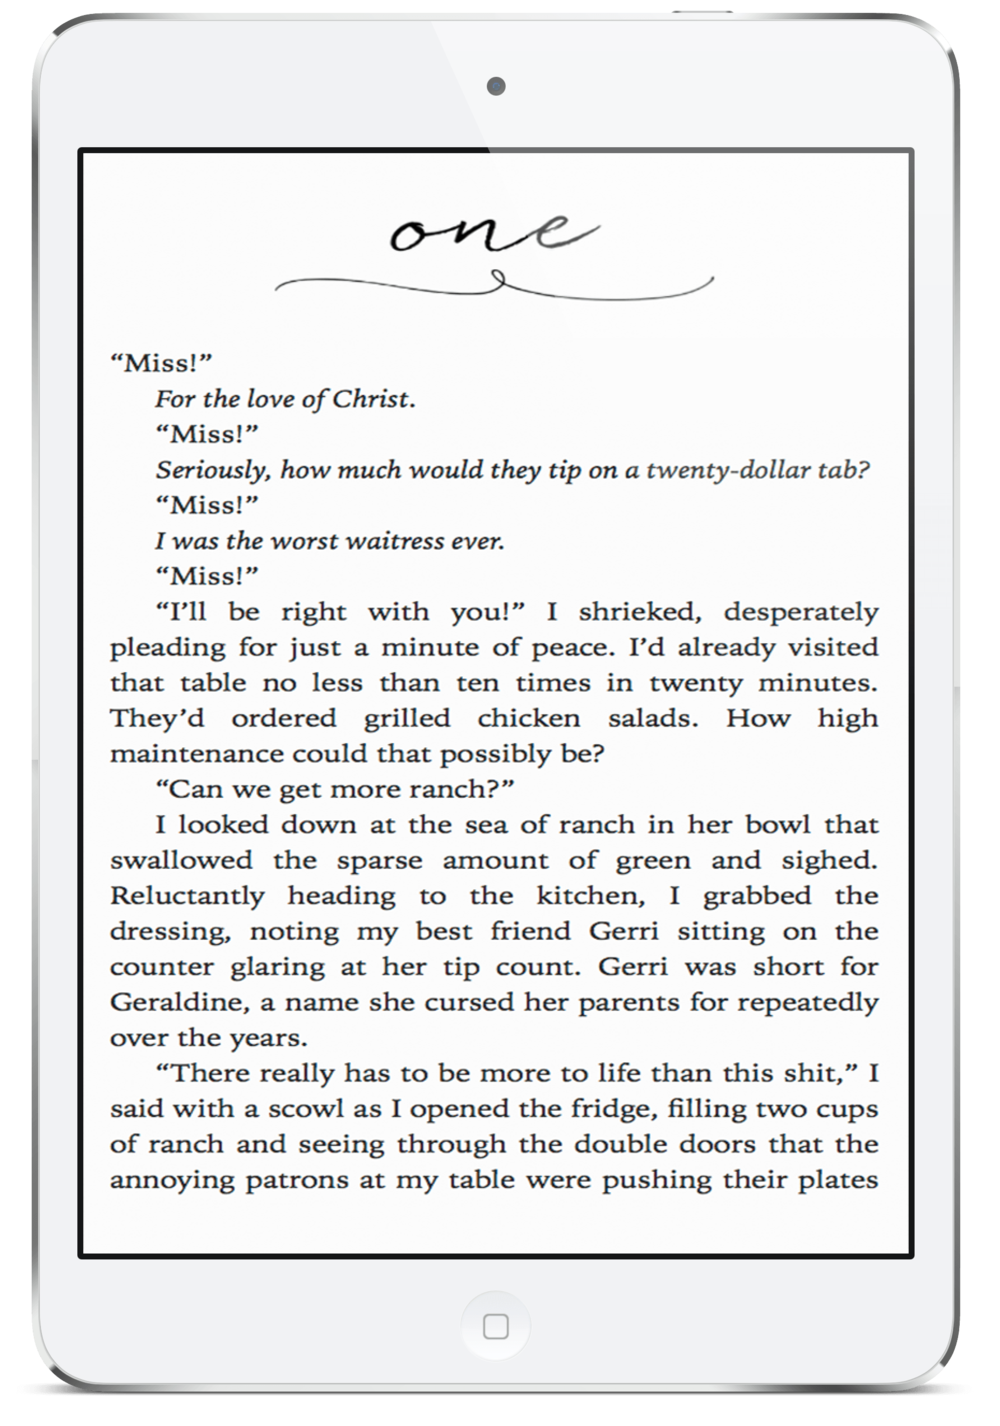 LTWL_Caudual ebook sample.png